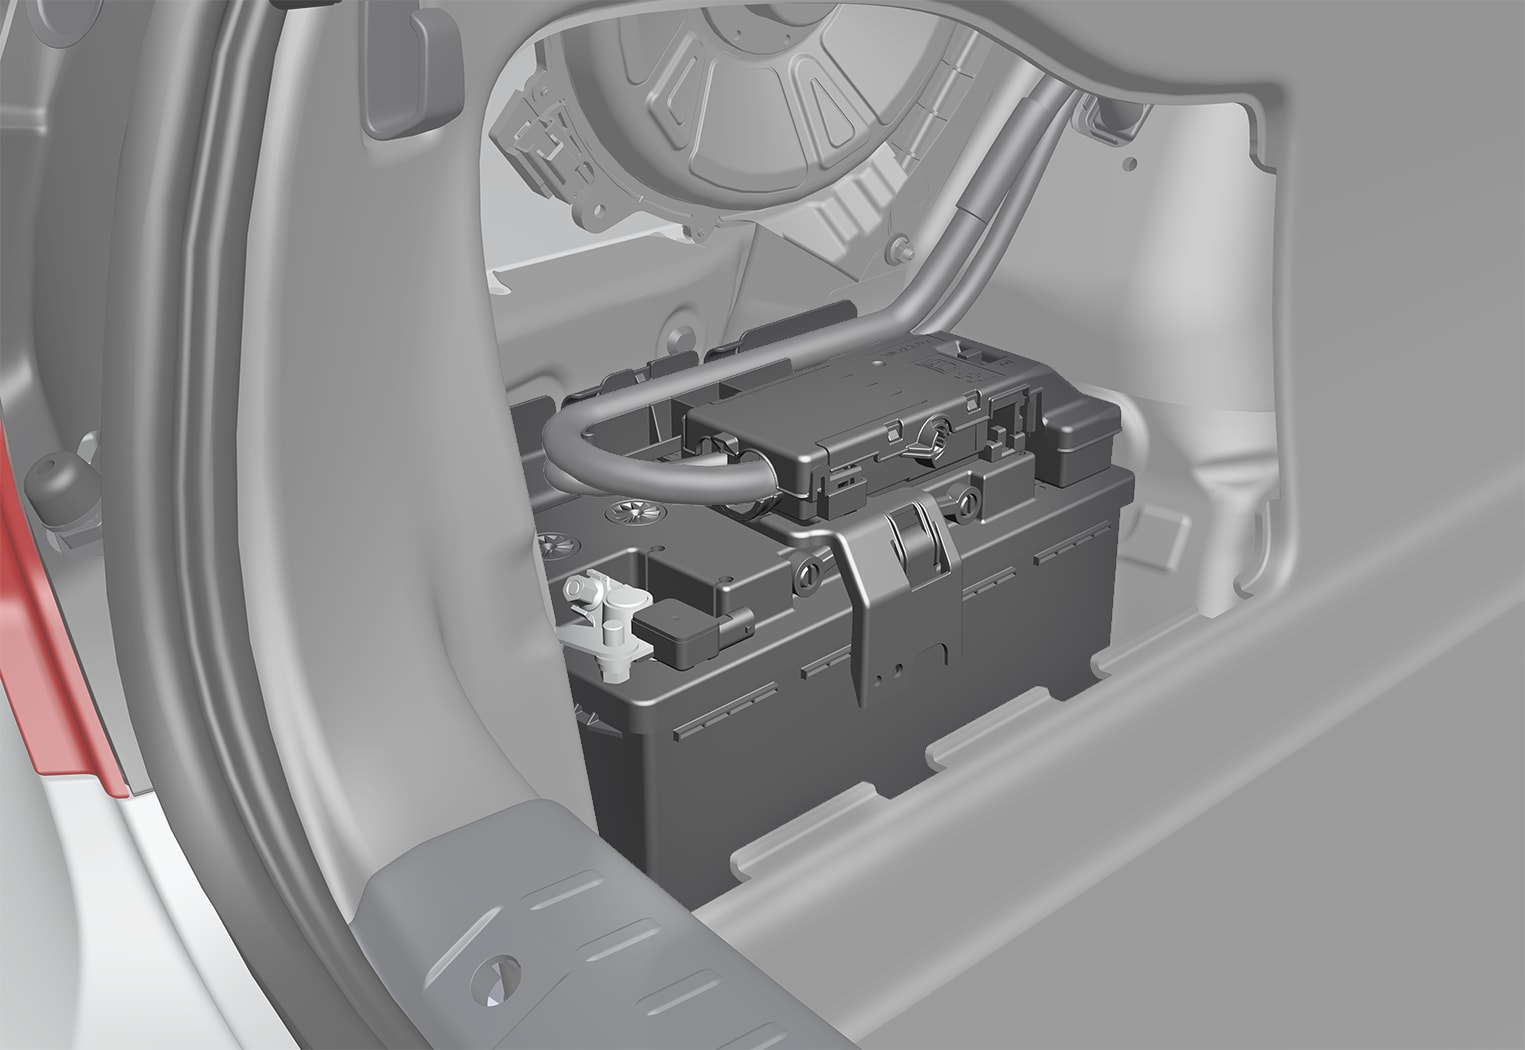 P5-1617-S90 Starter battery location